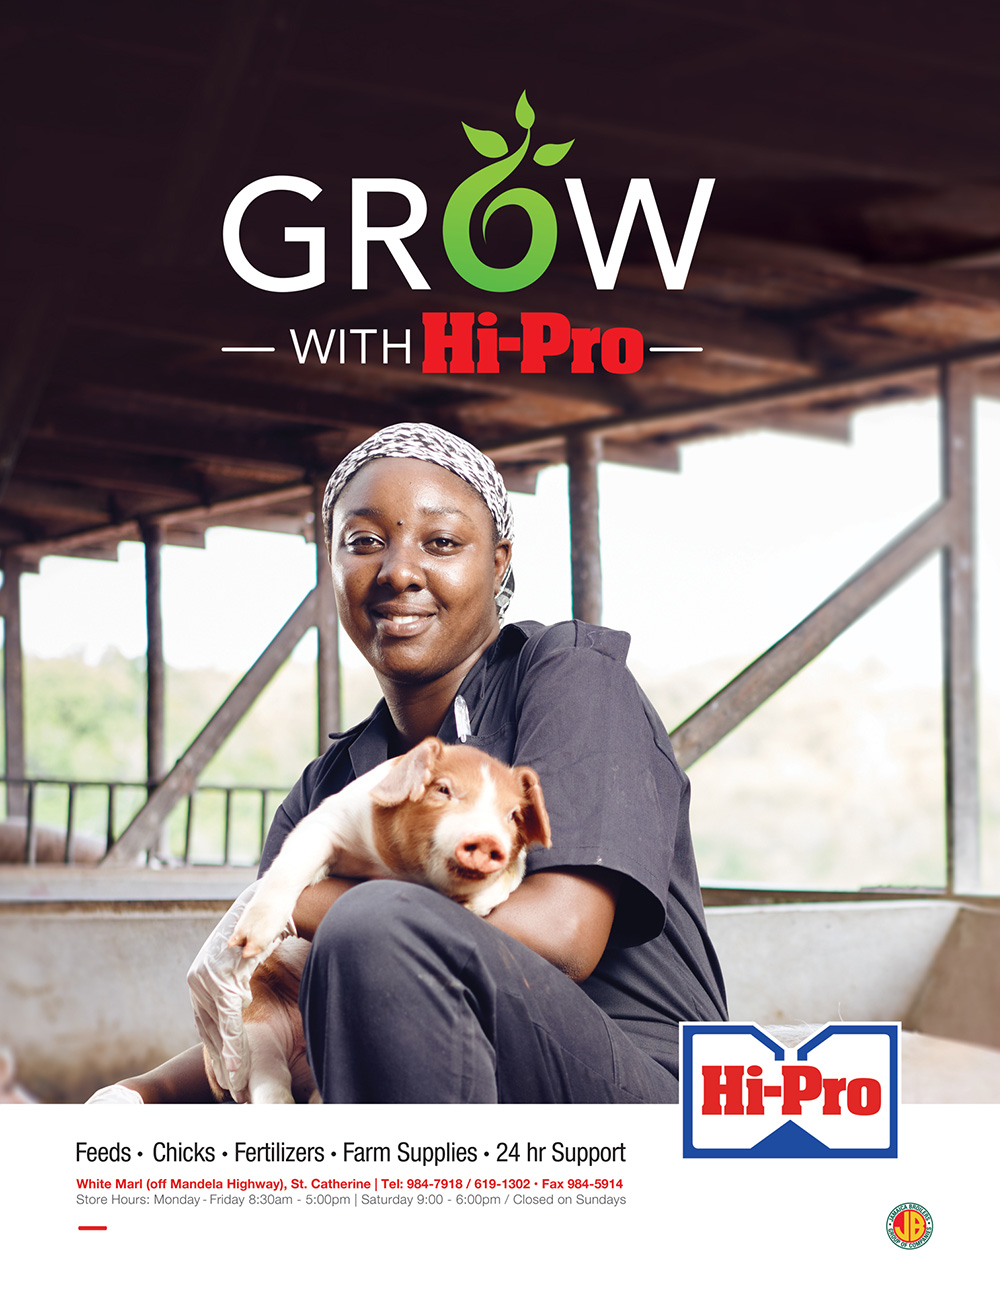 Case-Studies-HiPro_Grow_Broilers4